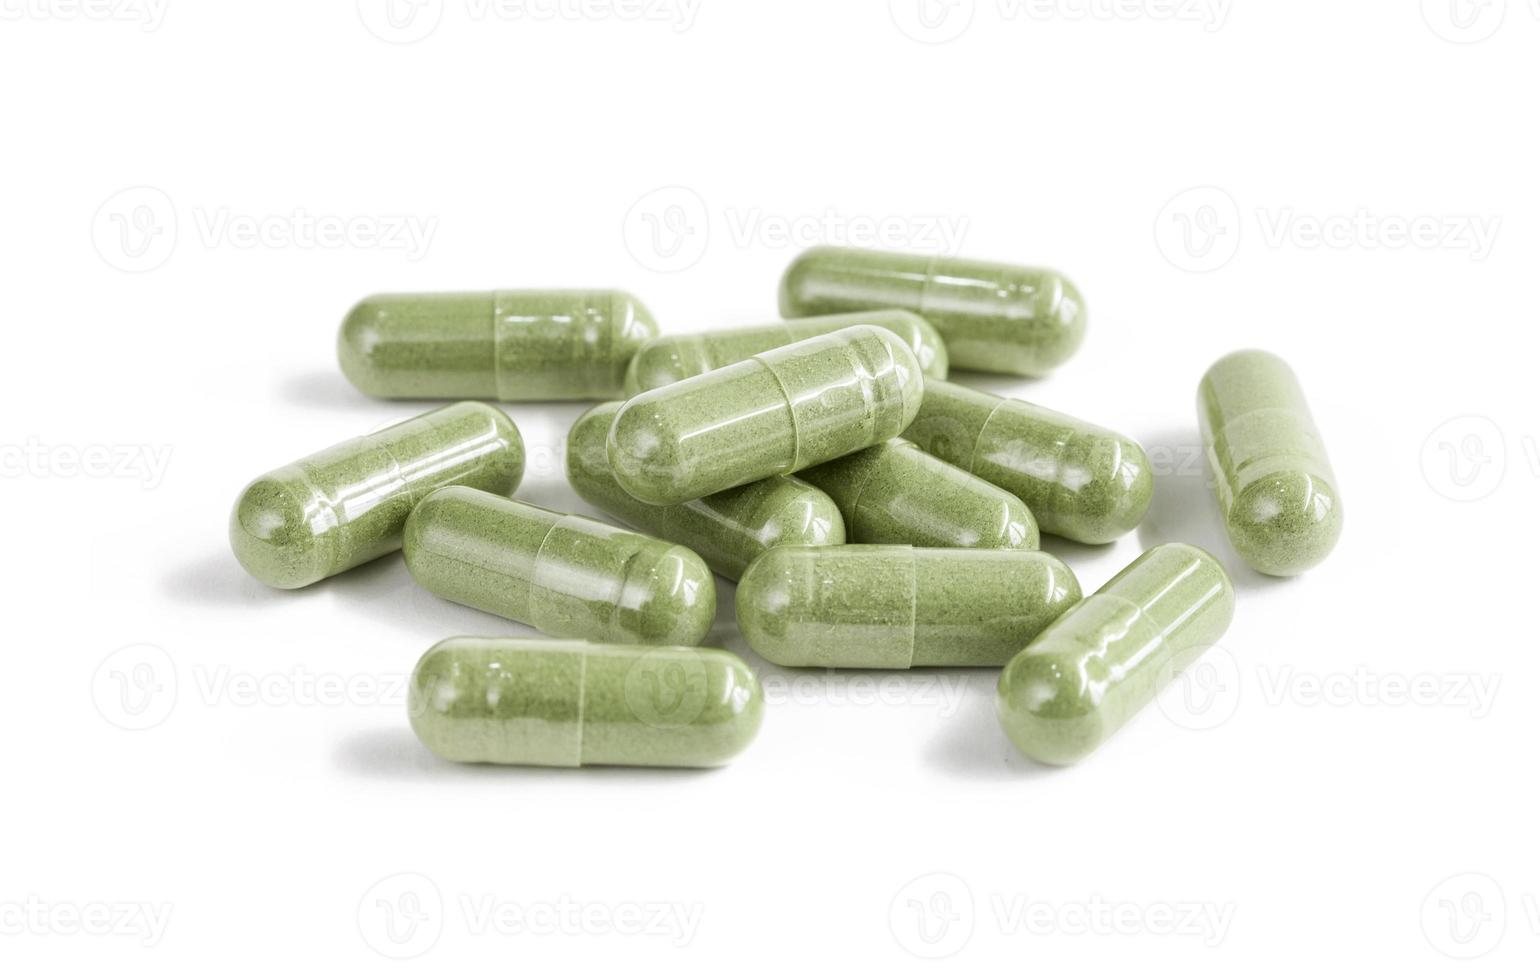 Capsules of green herbal supplement product isolated on white photo